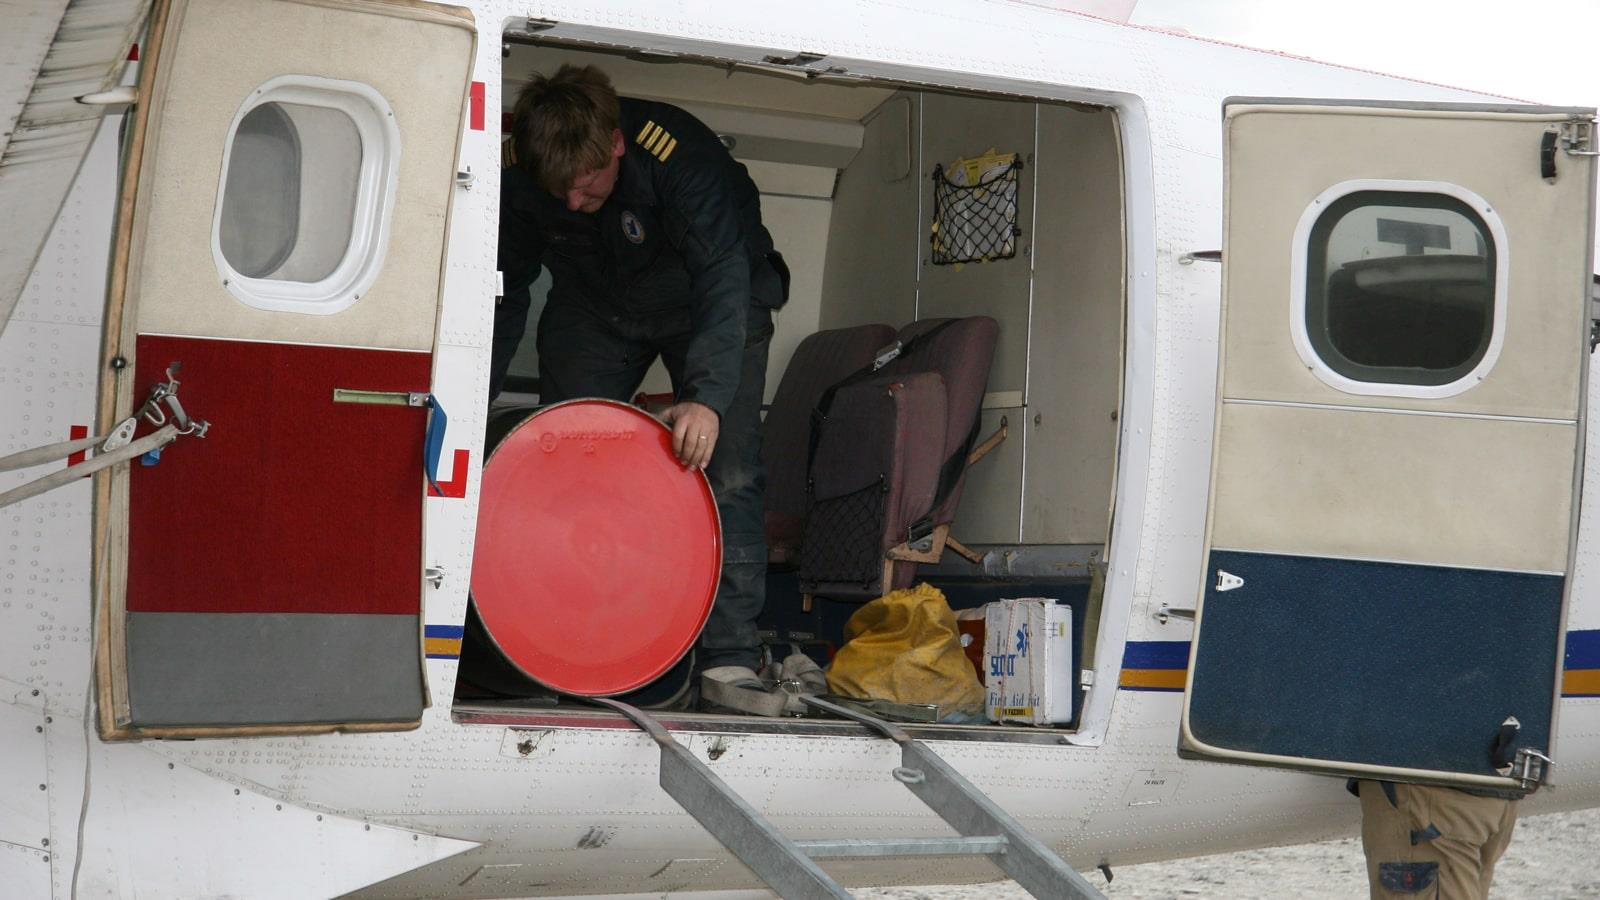 Drum being unloaded from airplane